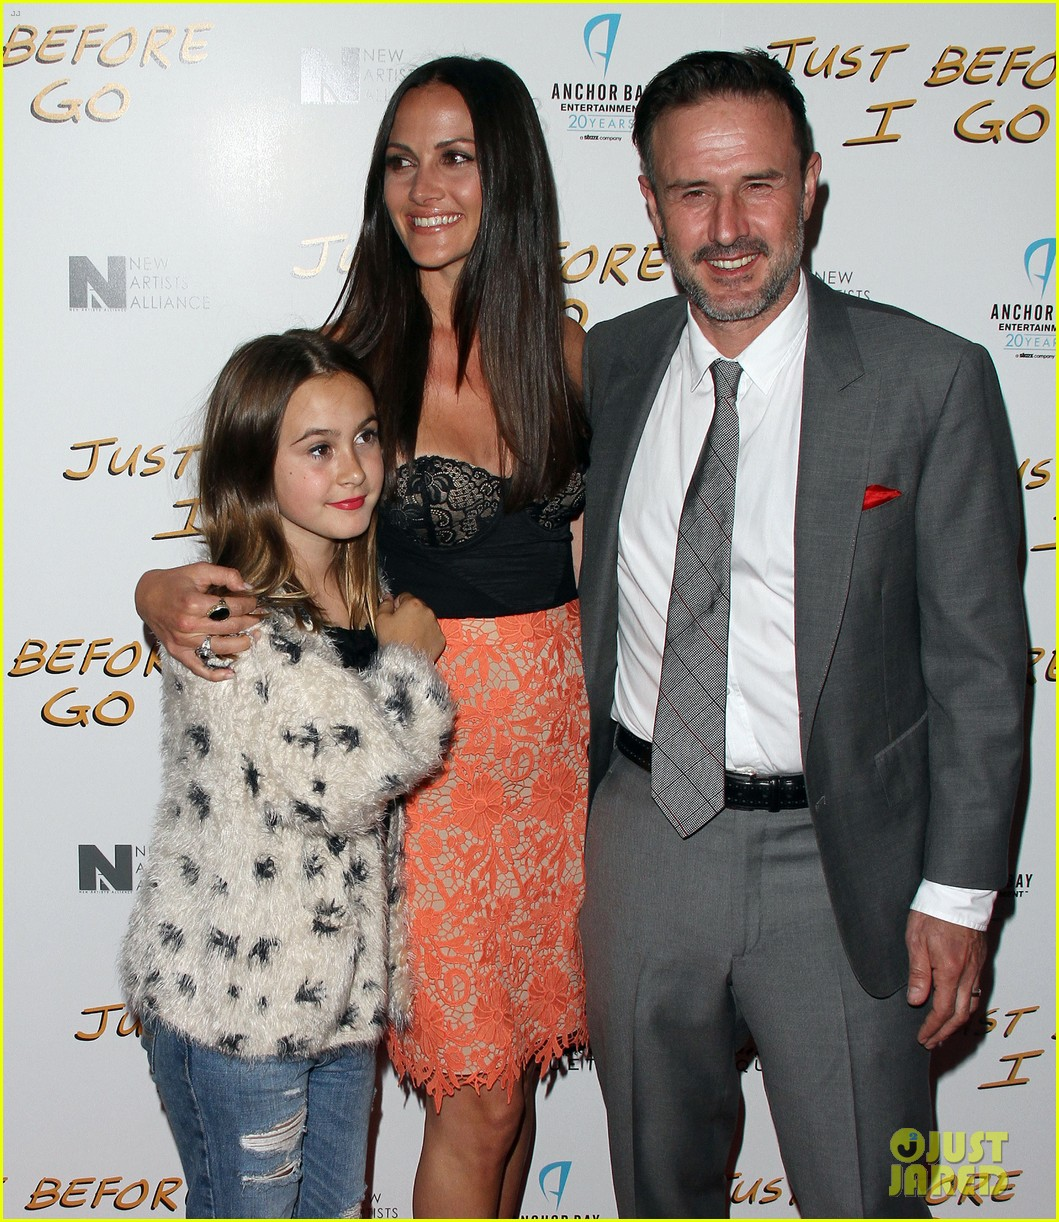 Courteney Cox And Coco 2016 42796 | BAIDATA